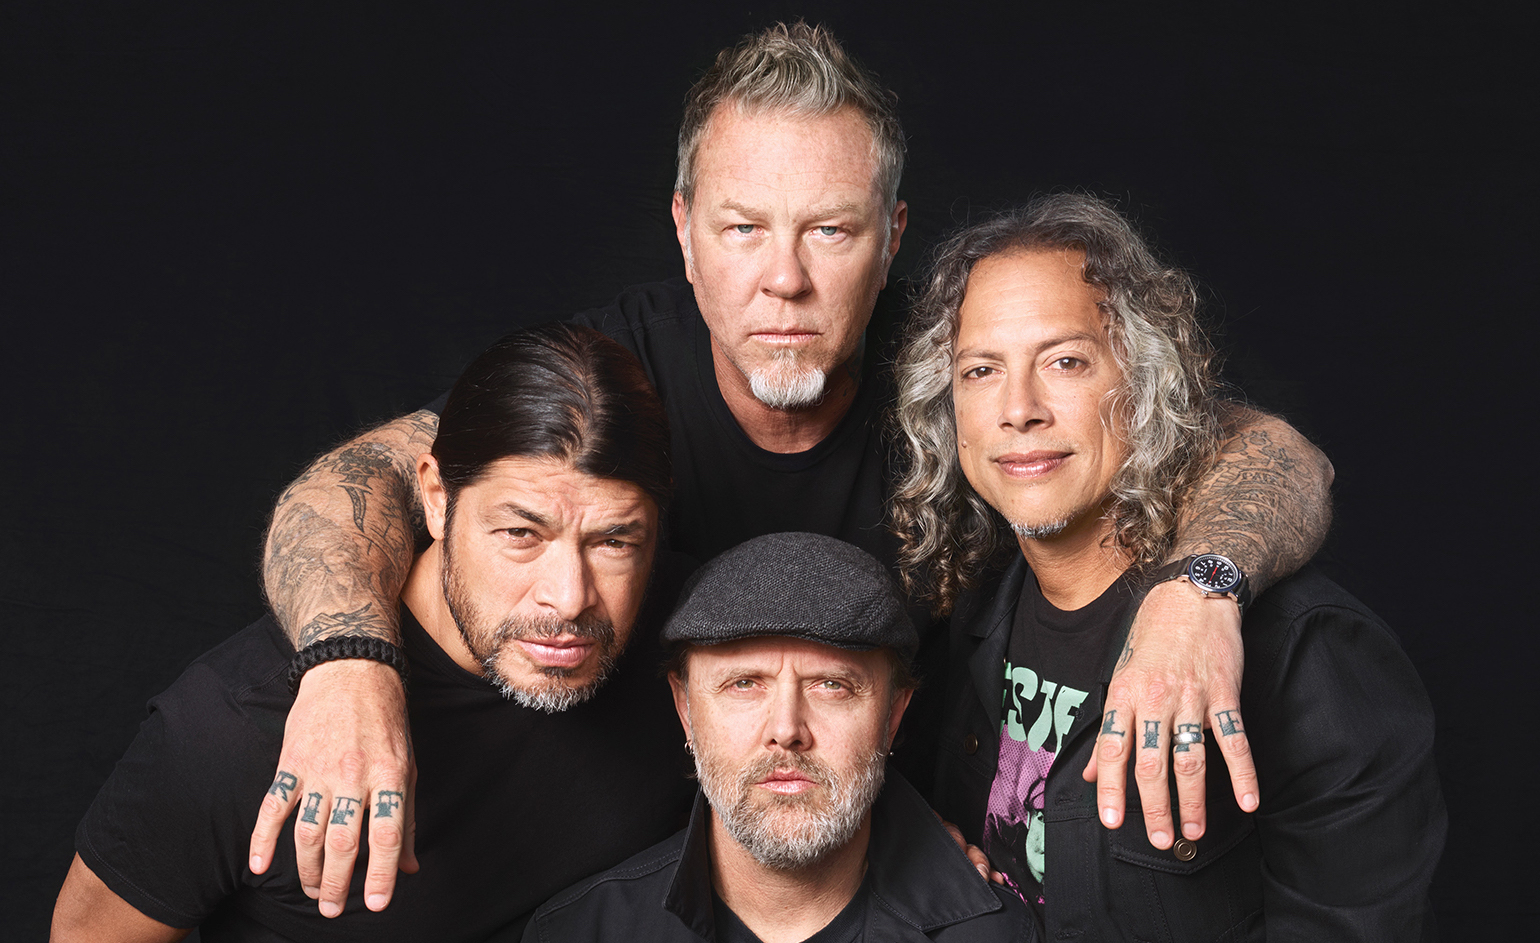 BB29-FEA-Metallica-s4d-2016-billboard-1548